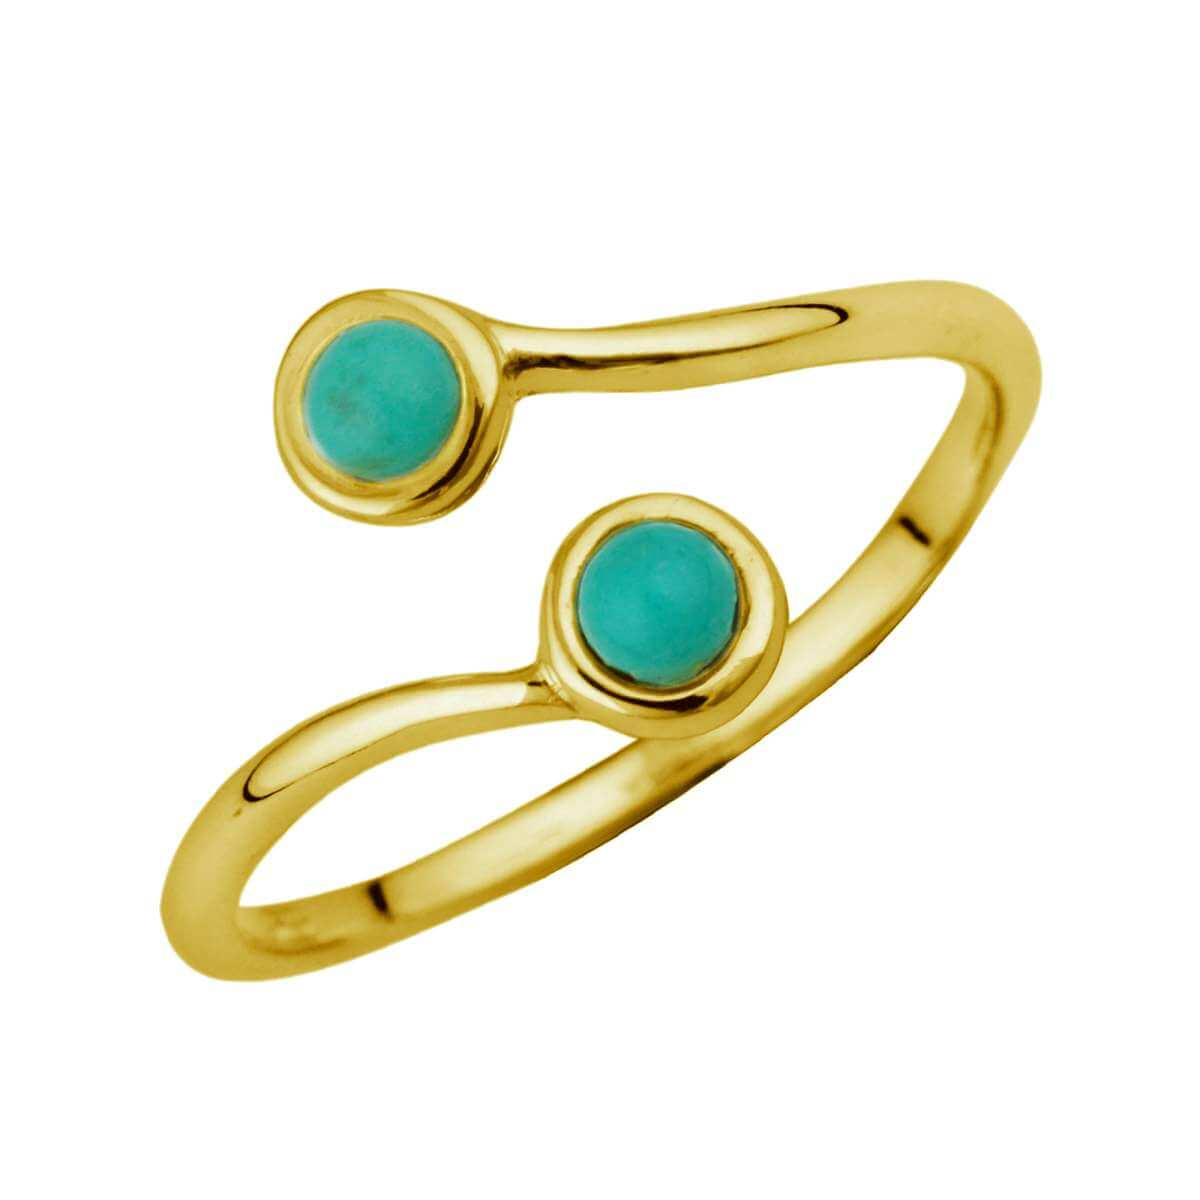 Gold Plated Sterling Silver & Faux Turquoise Adjustable Ring